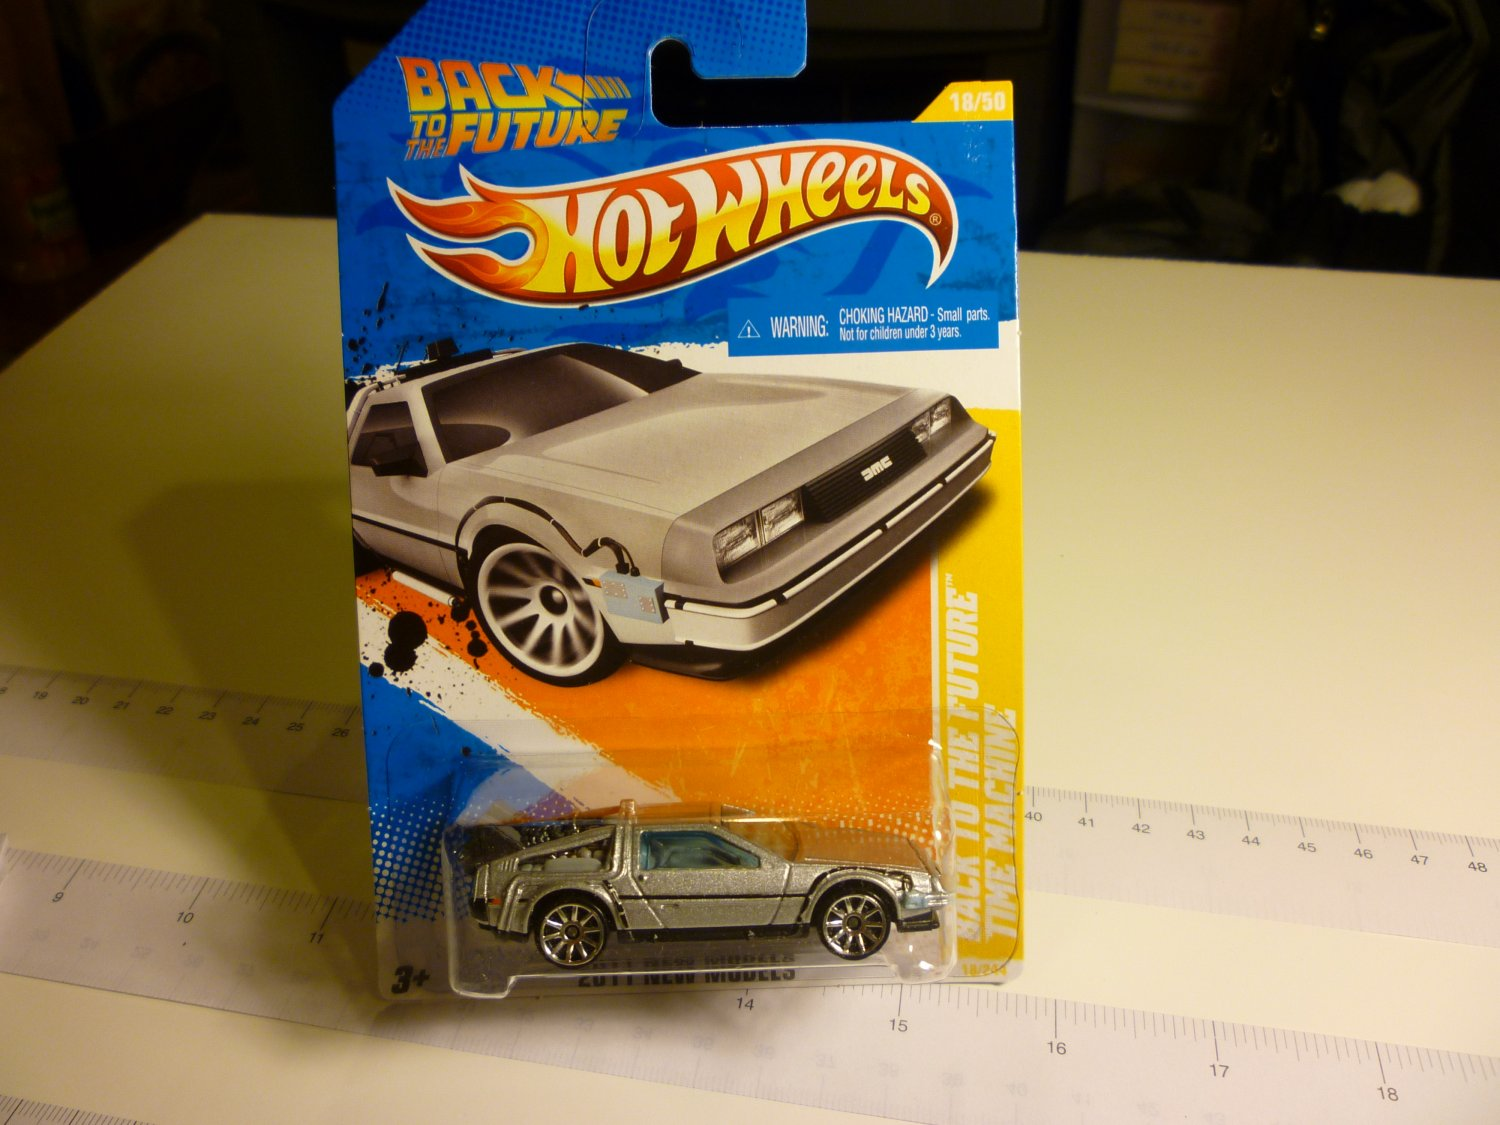 De Lorean Matchbox Car - Back to the future car - Rare Item